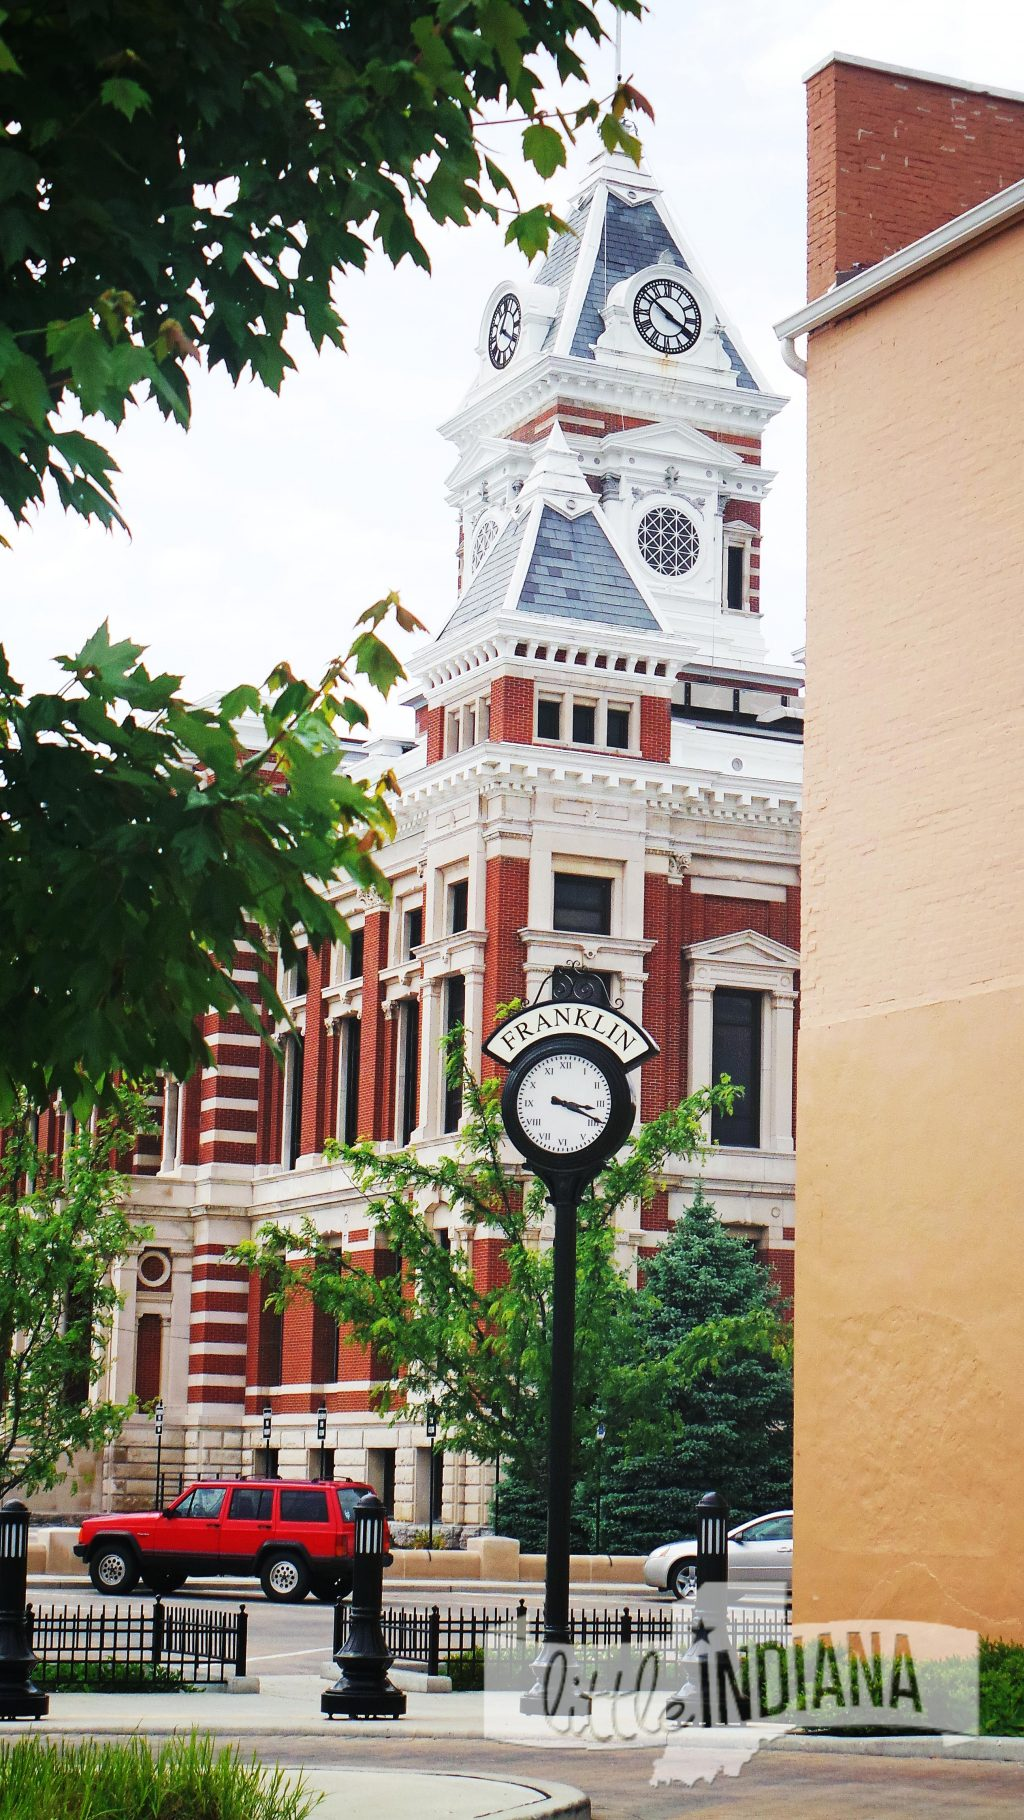 Indiana white county idaville - Thejohnson County Courthouse In Franklin Indiana Is A Stop On The Little Indiana County Selfie Stop Trail How Creative Can You Get With Your Selfie